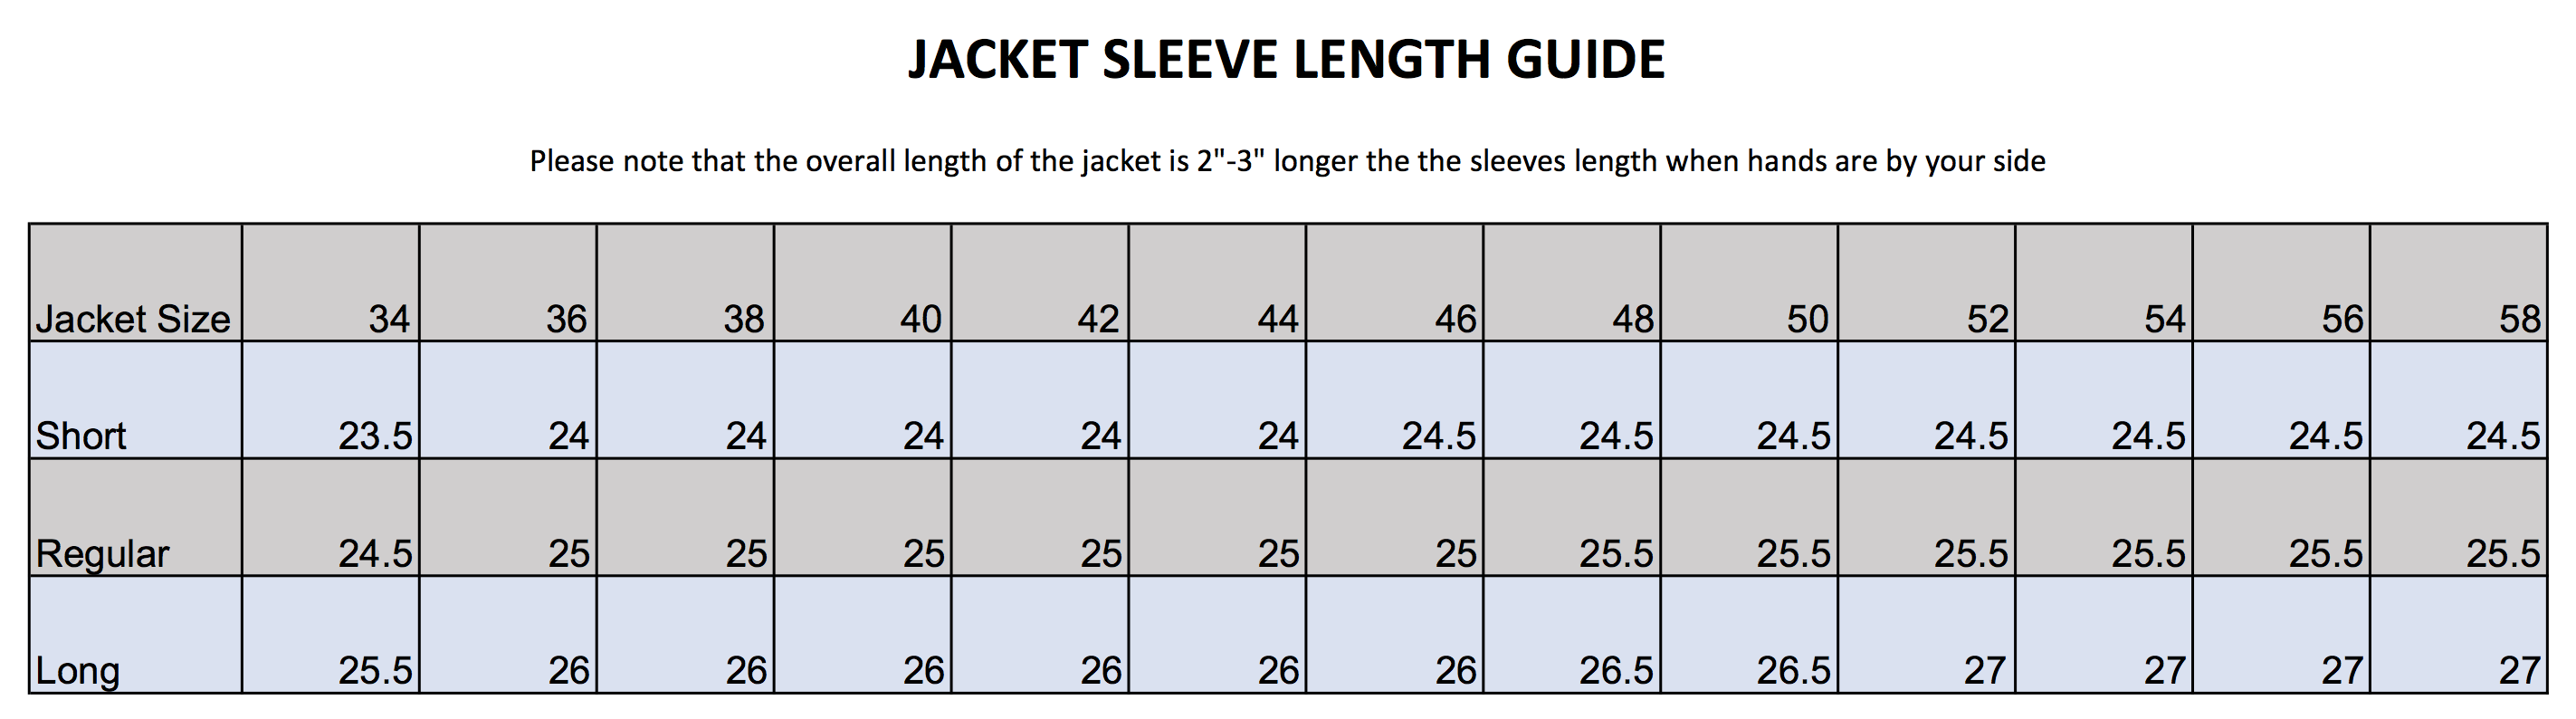 Jacket length guide